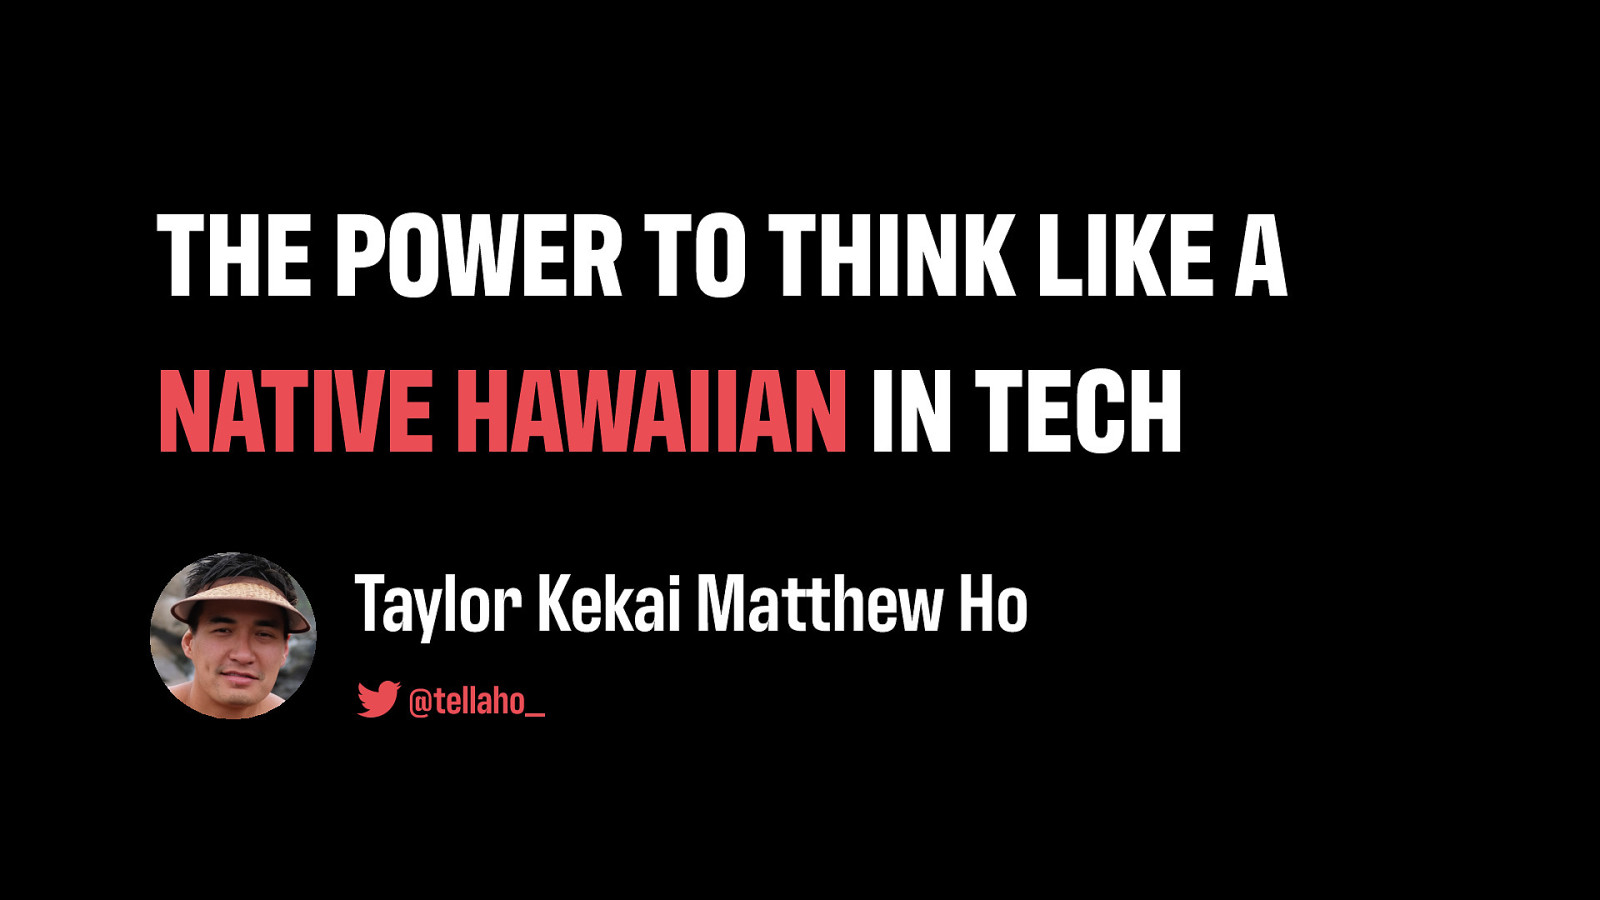 The Power to Think Like a Native Hawaiian in Tech